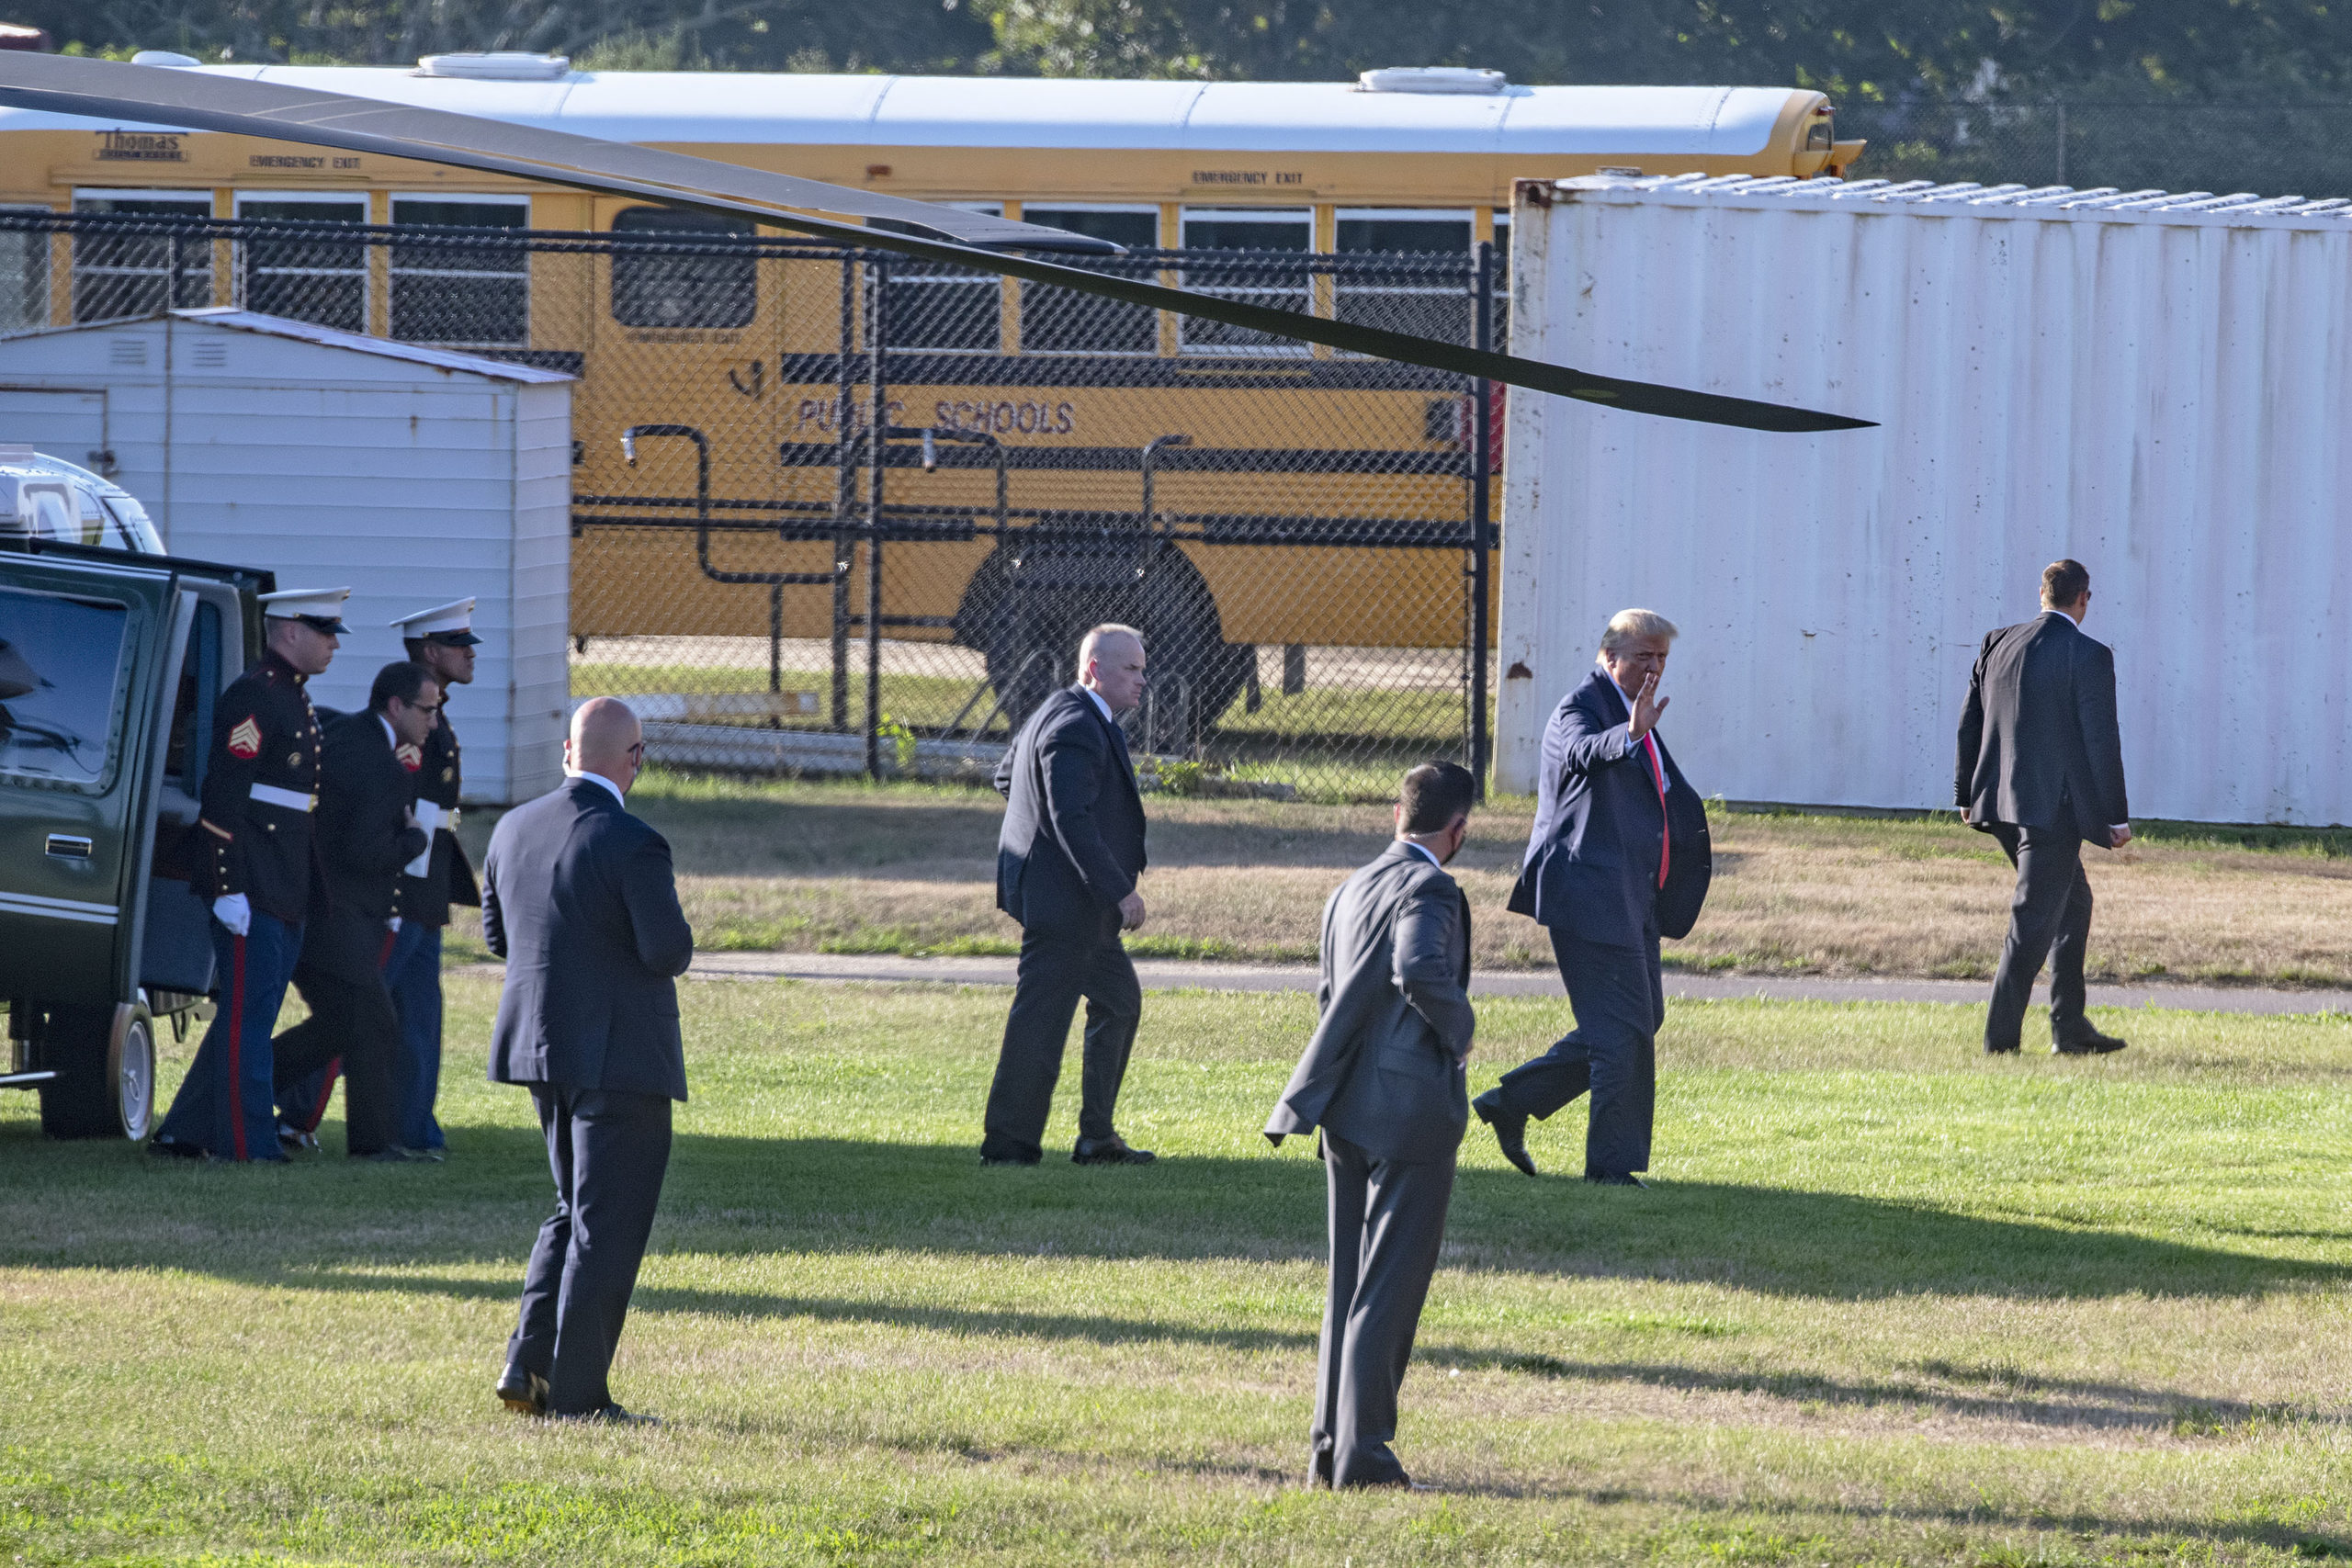 President Donald Trump waves as he walks toward his limousine after arriving via Marine helicopter at the athletic fields behind Southampton High School during his visit to the Hamptons on Saturday.   MICHAEL HELLER